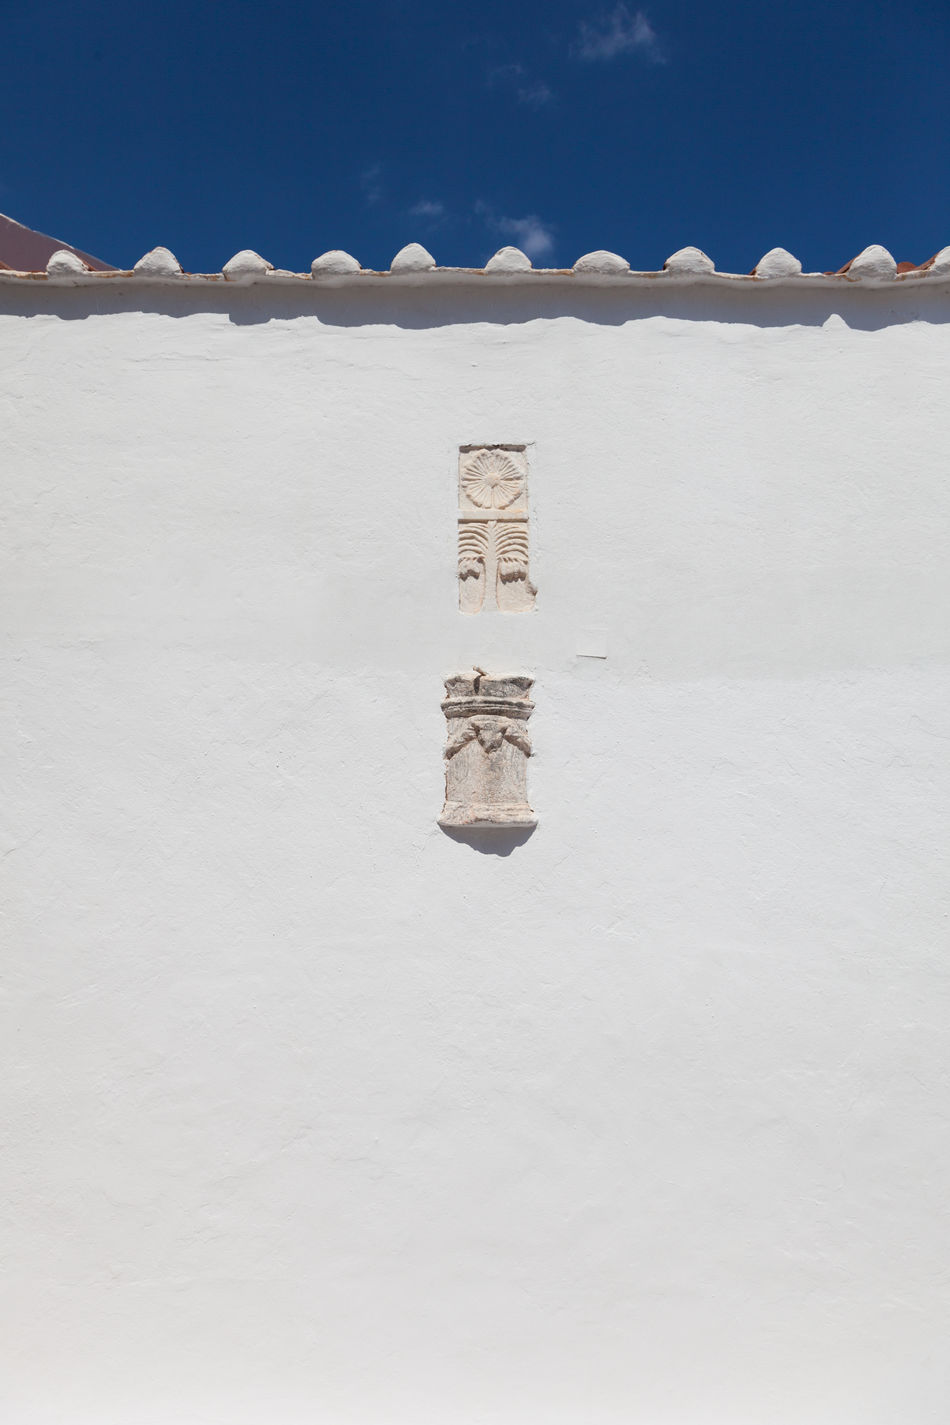 Lindos Rhodes Greece Ancient Blue Sky Church Churches Clear Sky Growth Lindos Nature No People Outdoors Rhodes Rhodos Symbol Symbols Vertical Wall White